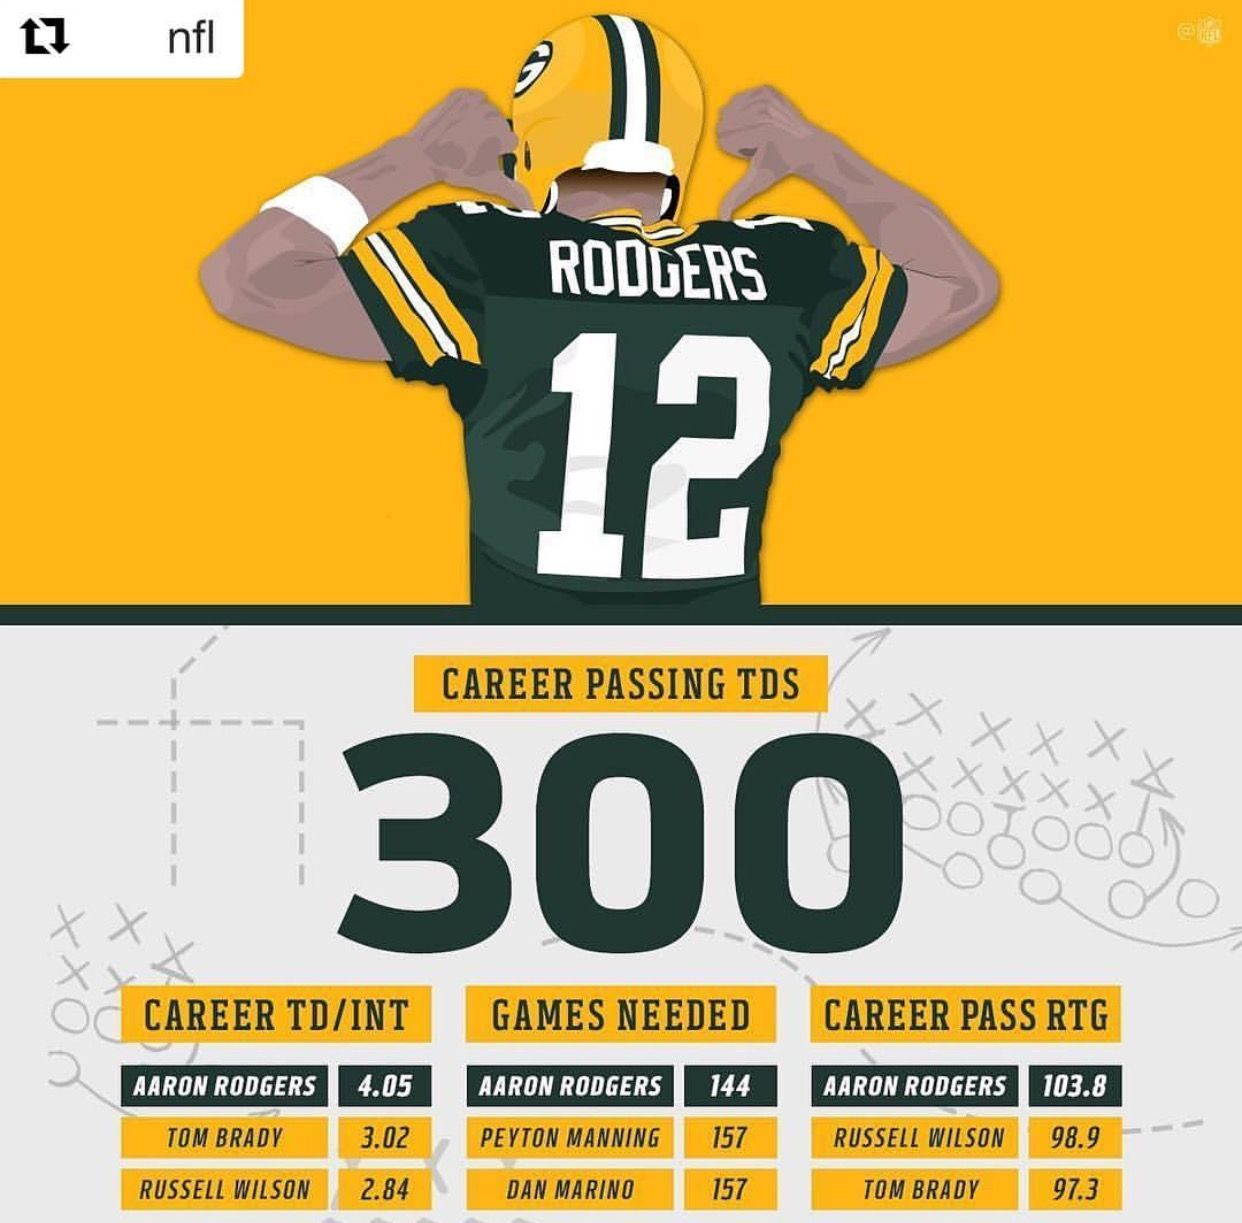 Aaron Rodgers Fastest Qb To Reach 300 Touchdowns In Nfl History Dan Marino Aaron Rodgers Nfl